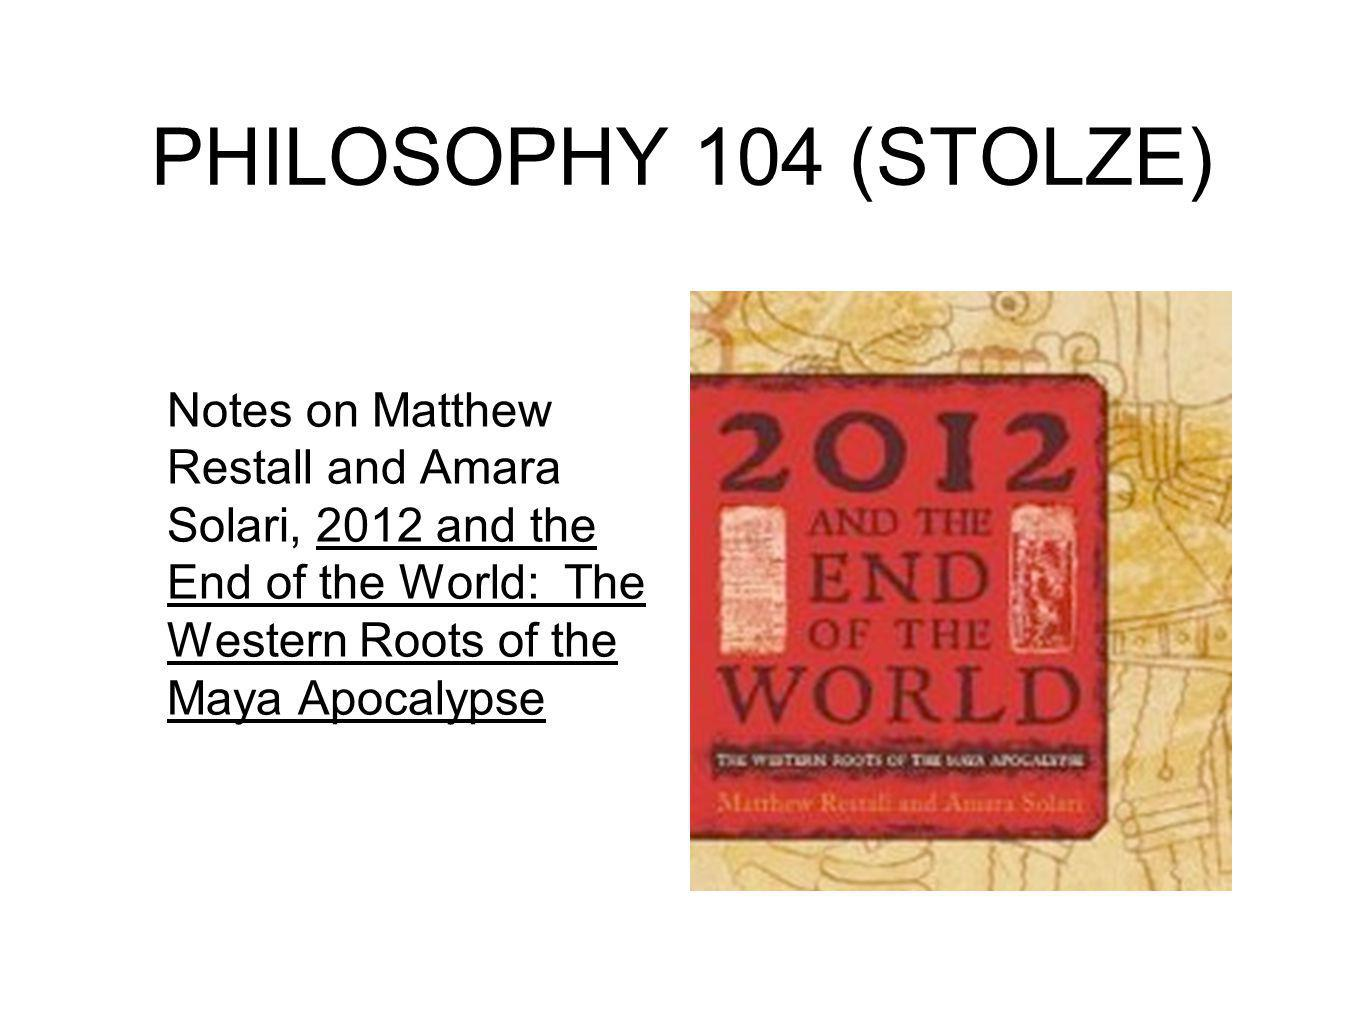 PHILOSOPHY 104 (STOLZE) Notes on Matthew Restall and Amara Solari, 2012 and the End of the World: The Western Roots of the Maya Apocalypse